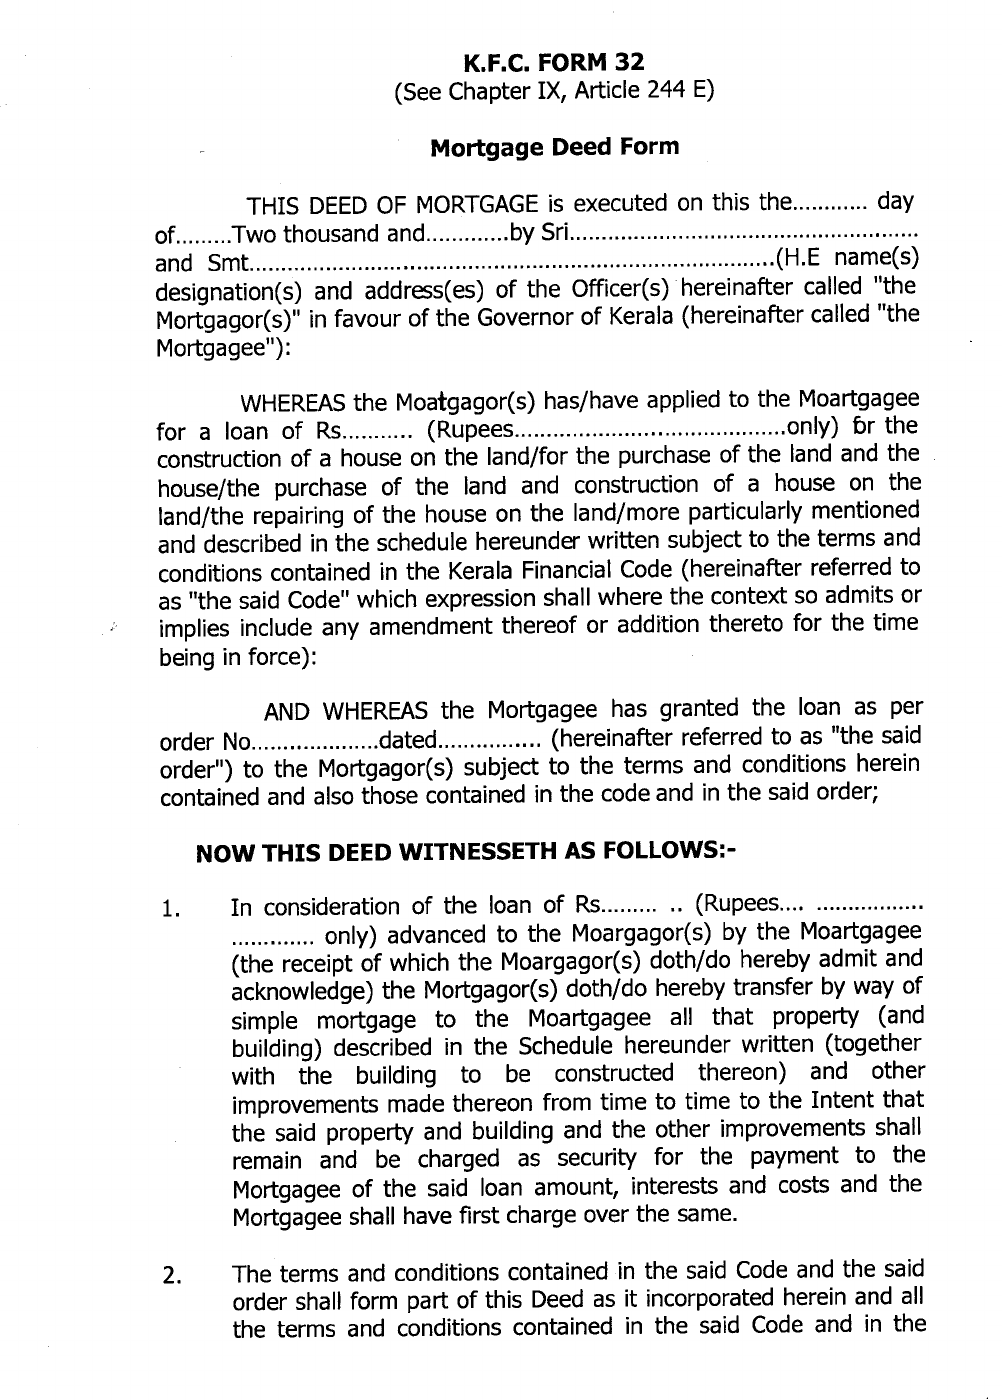 Mortgage Deed Form Example Free Download